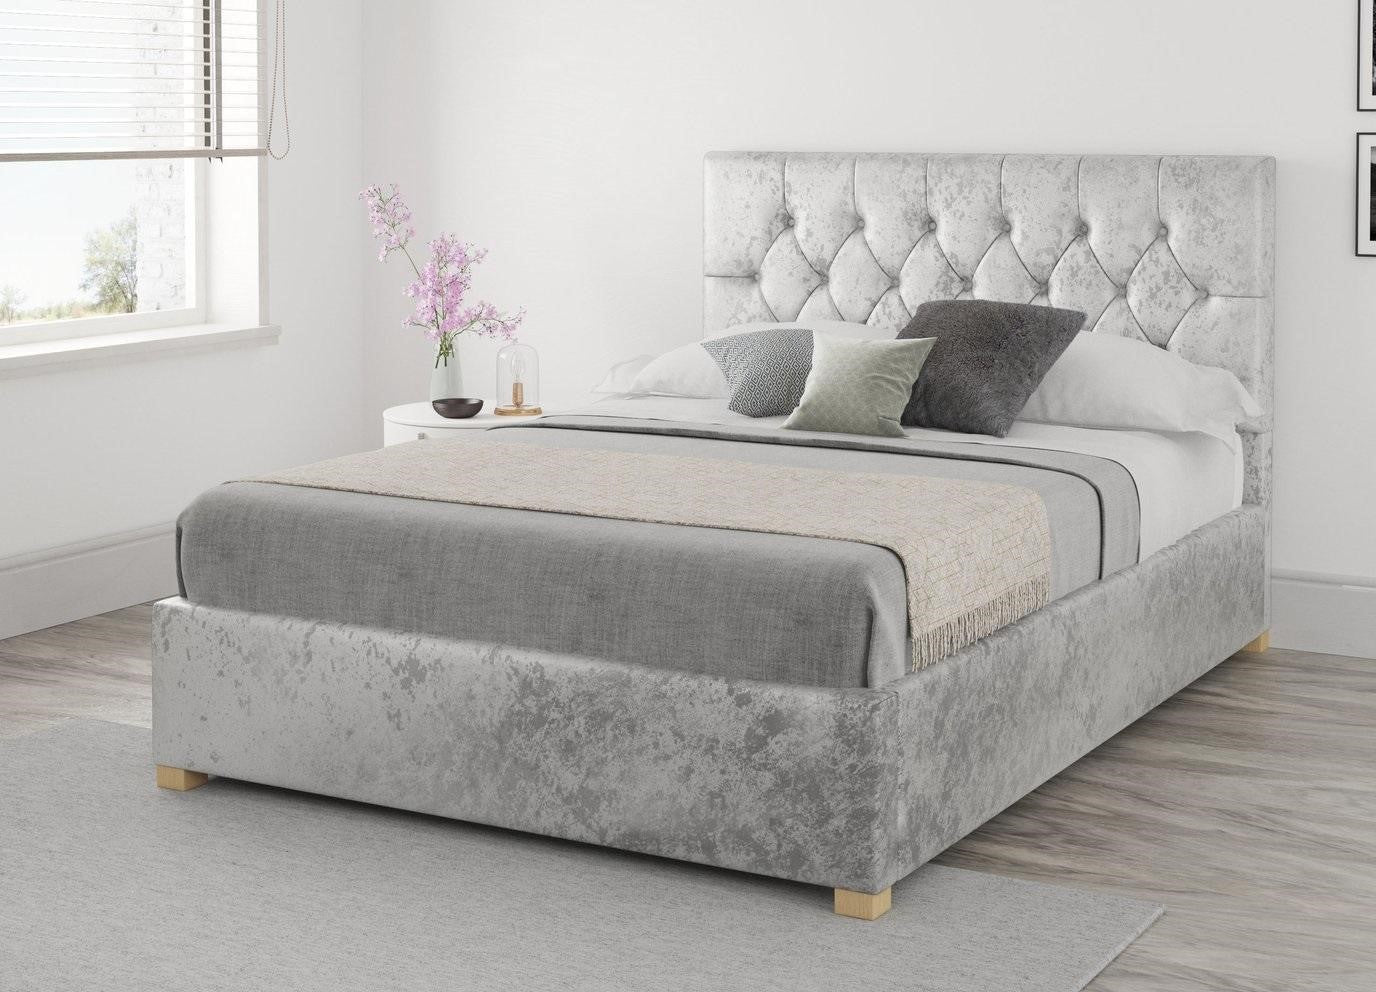 Silver Fabric Upholstered Ottoman Bed